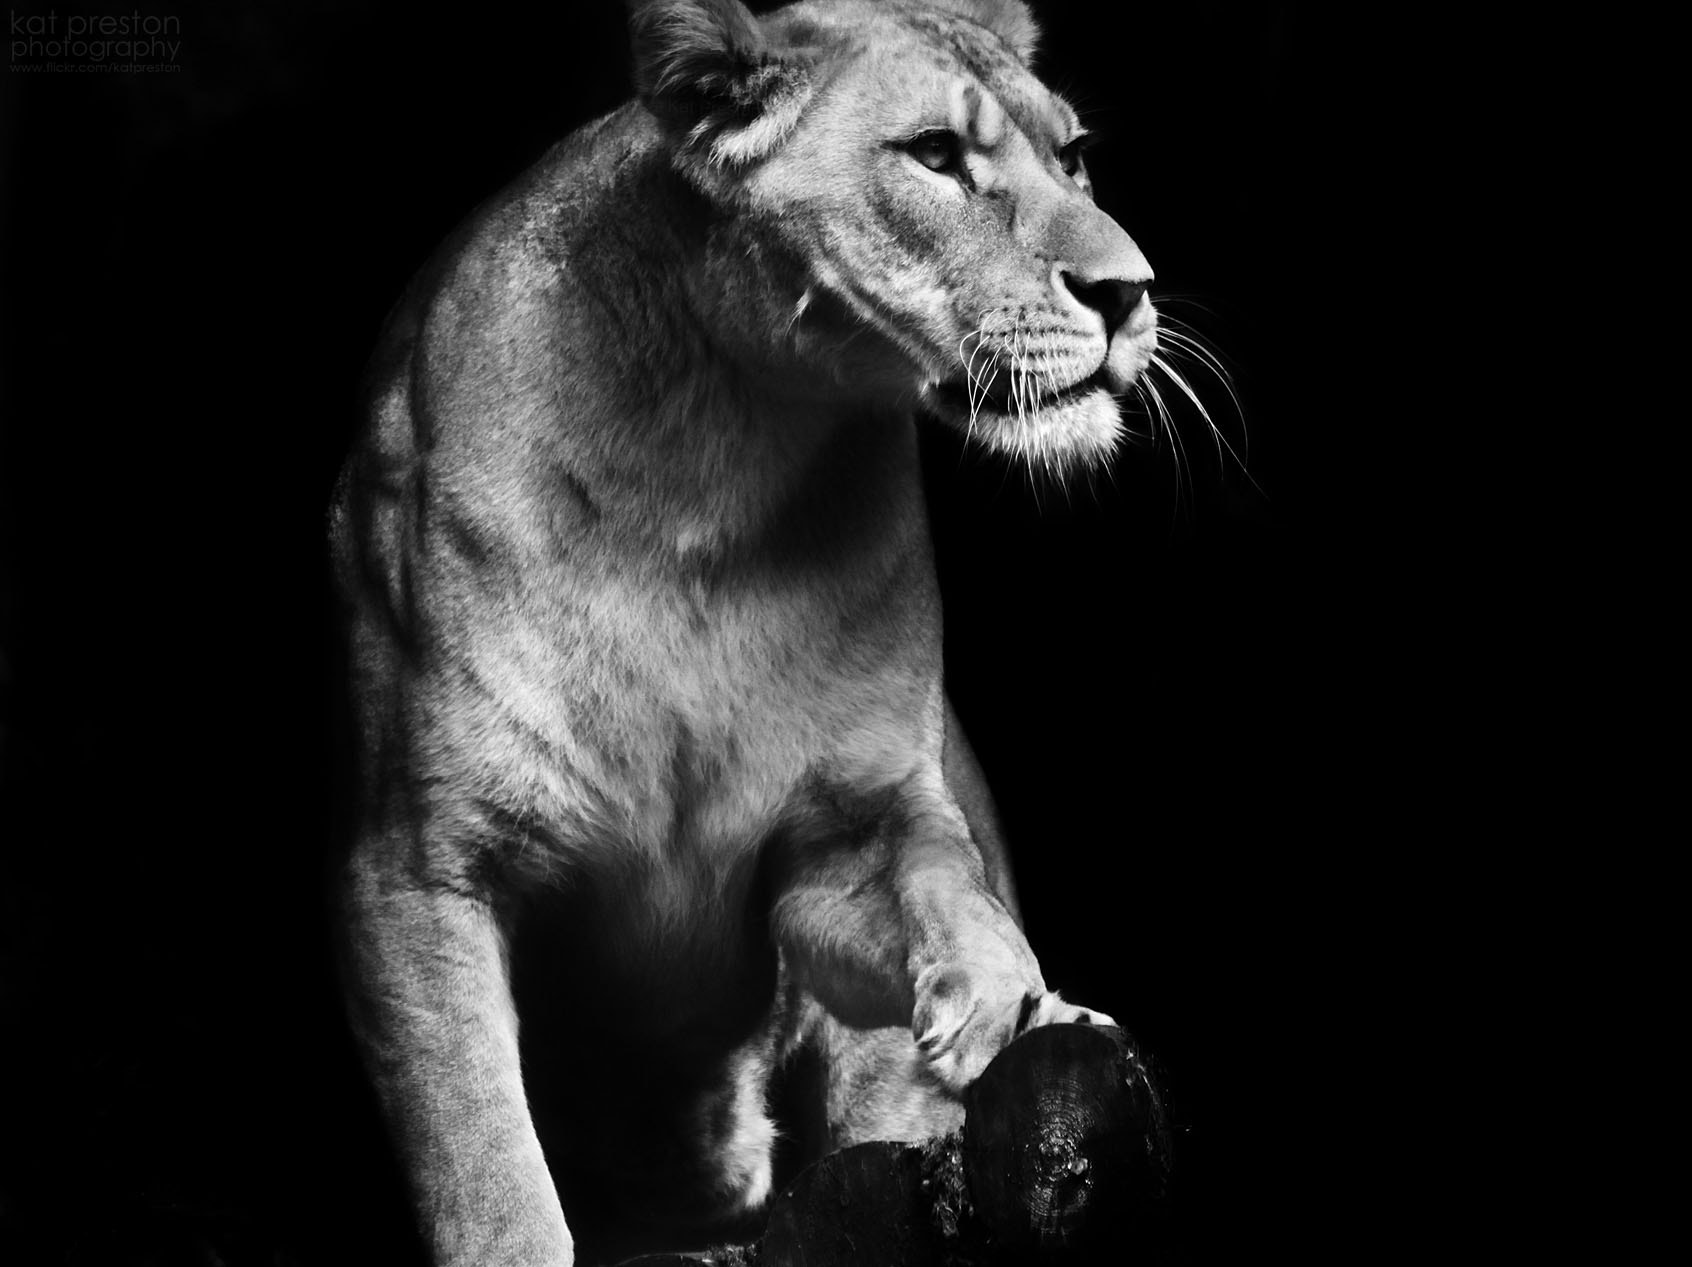 Photograph Barbary Lioness by Kat Preston on 500px